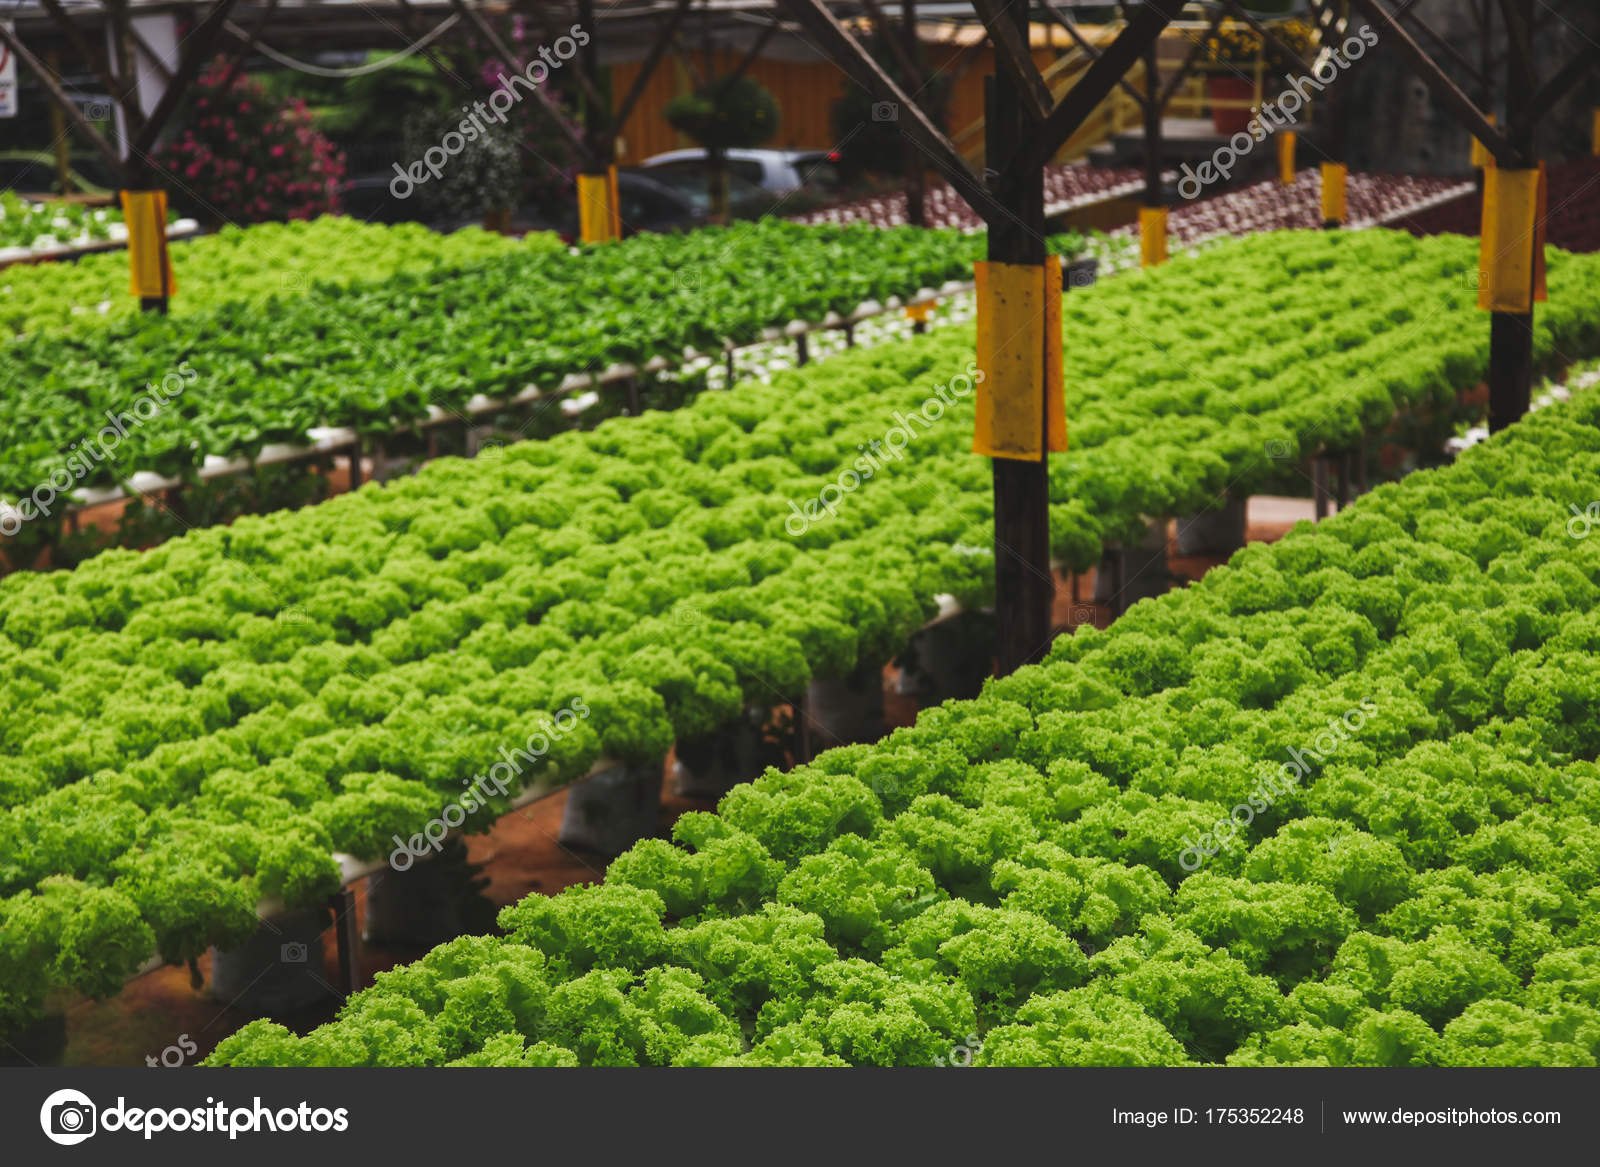 Rows Fresh Green Lettuce Growing Indoors Plantation Stock Photo